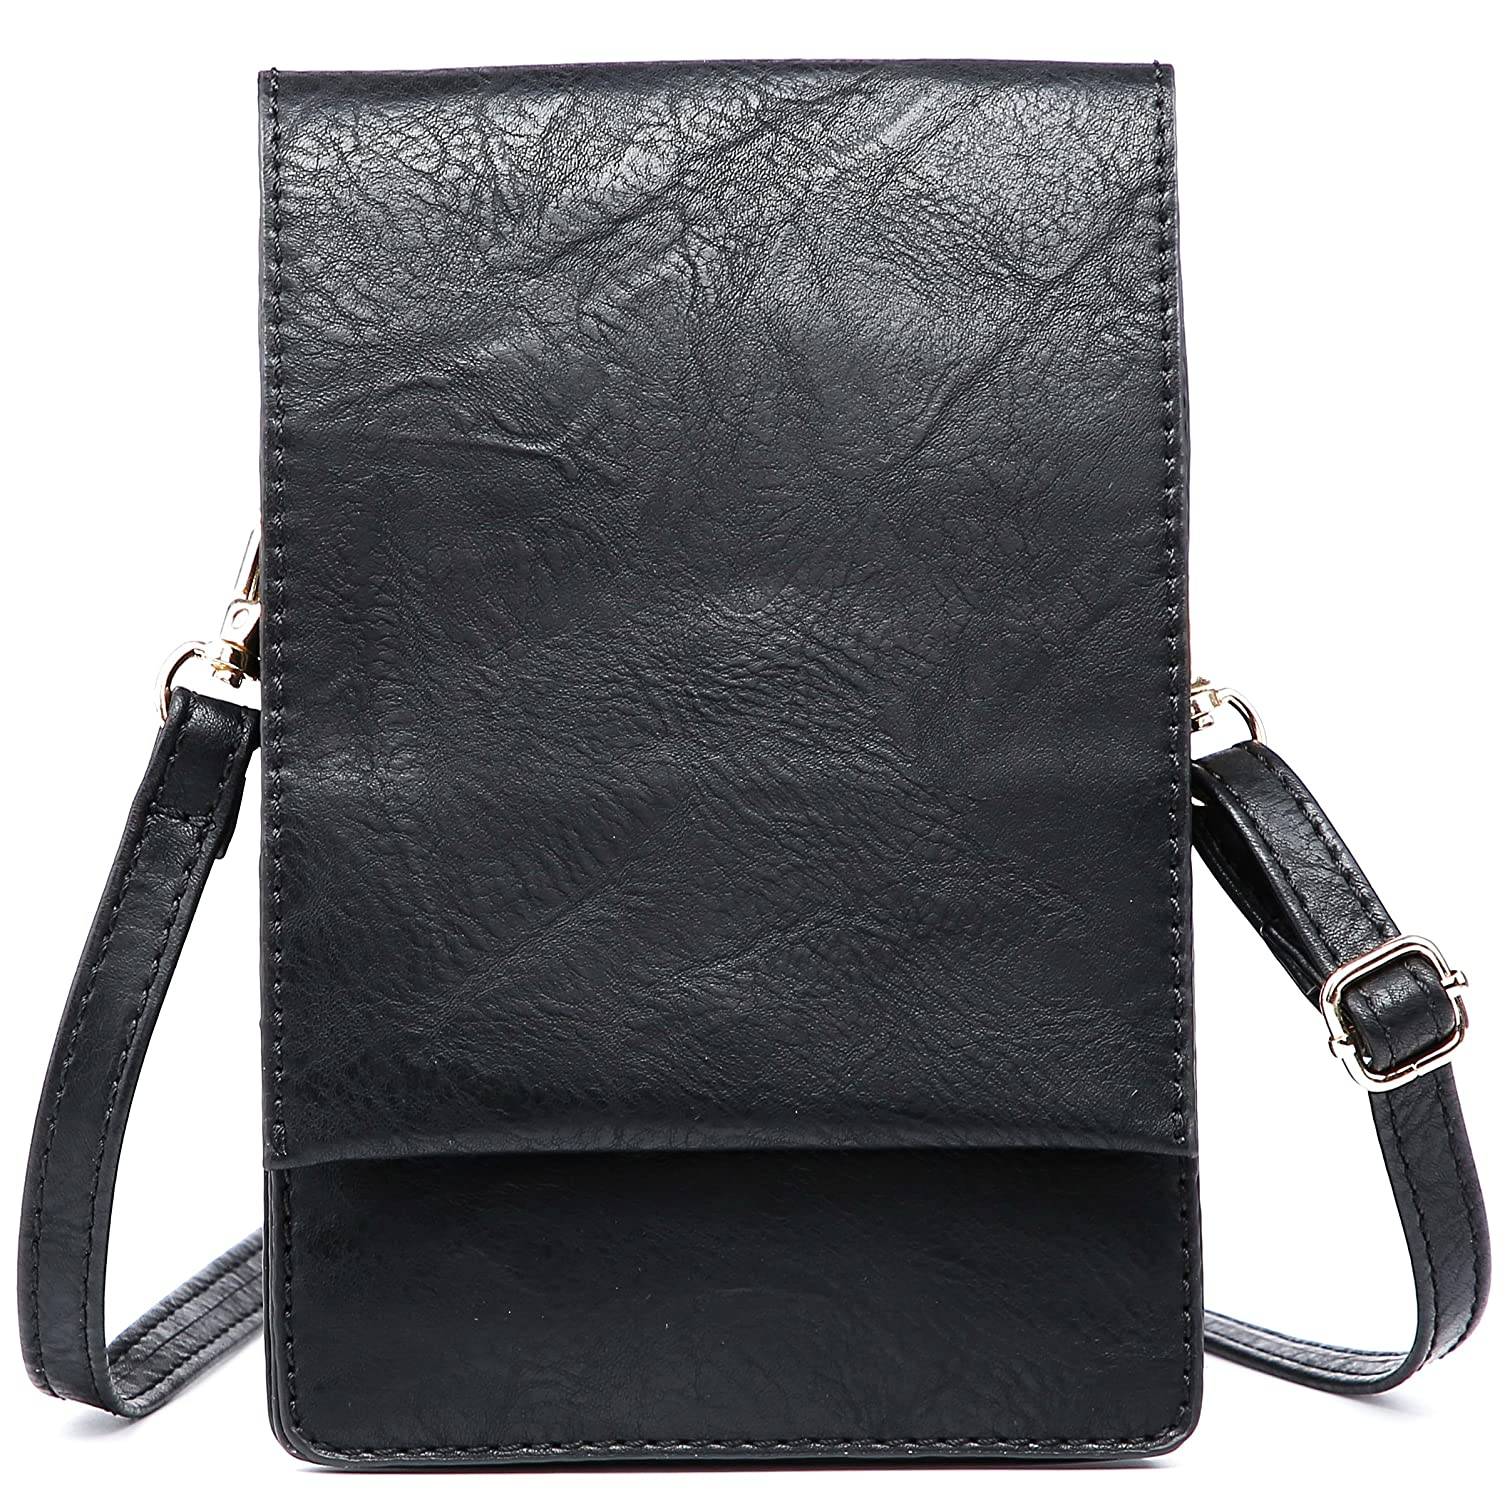 Shomico Women Small Crossbody Purse Cell Phone Pouch Wallet Shoulder Bag For 6 Inches SH-CC005